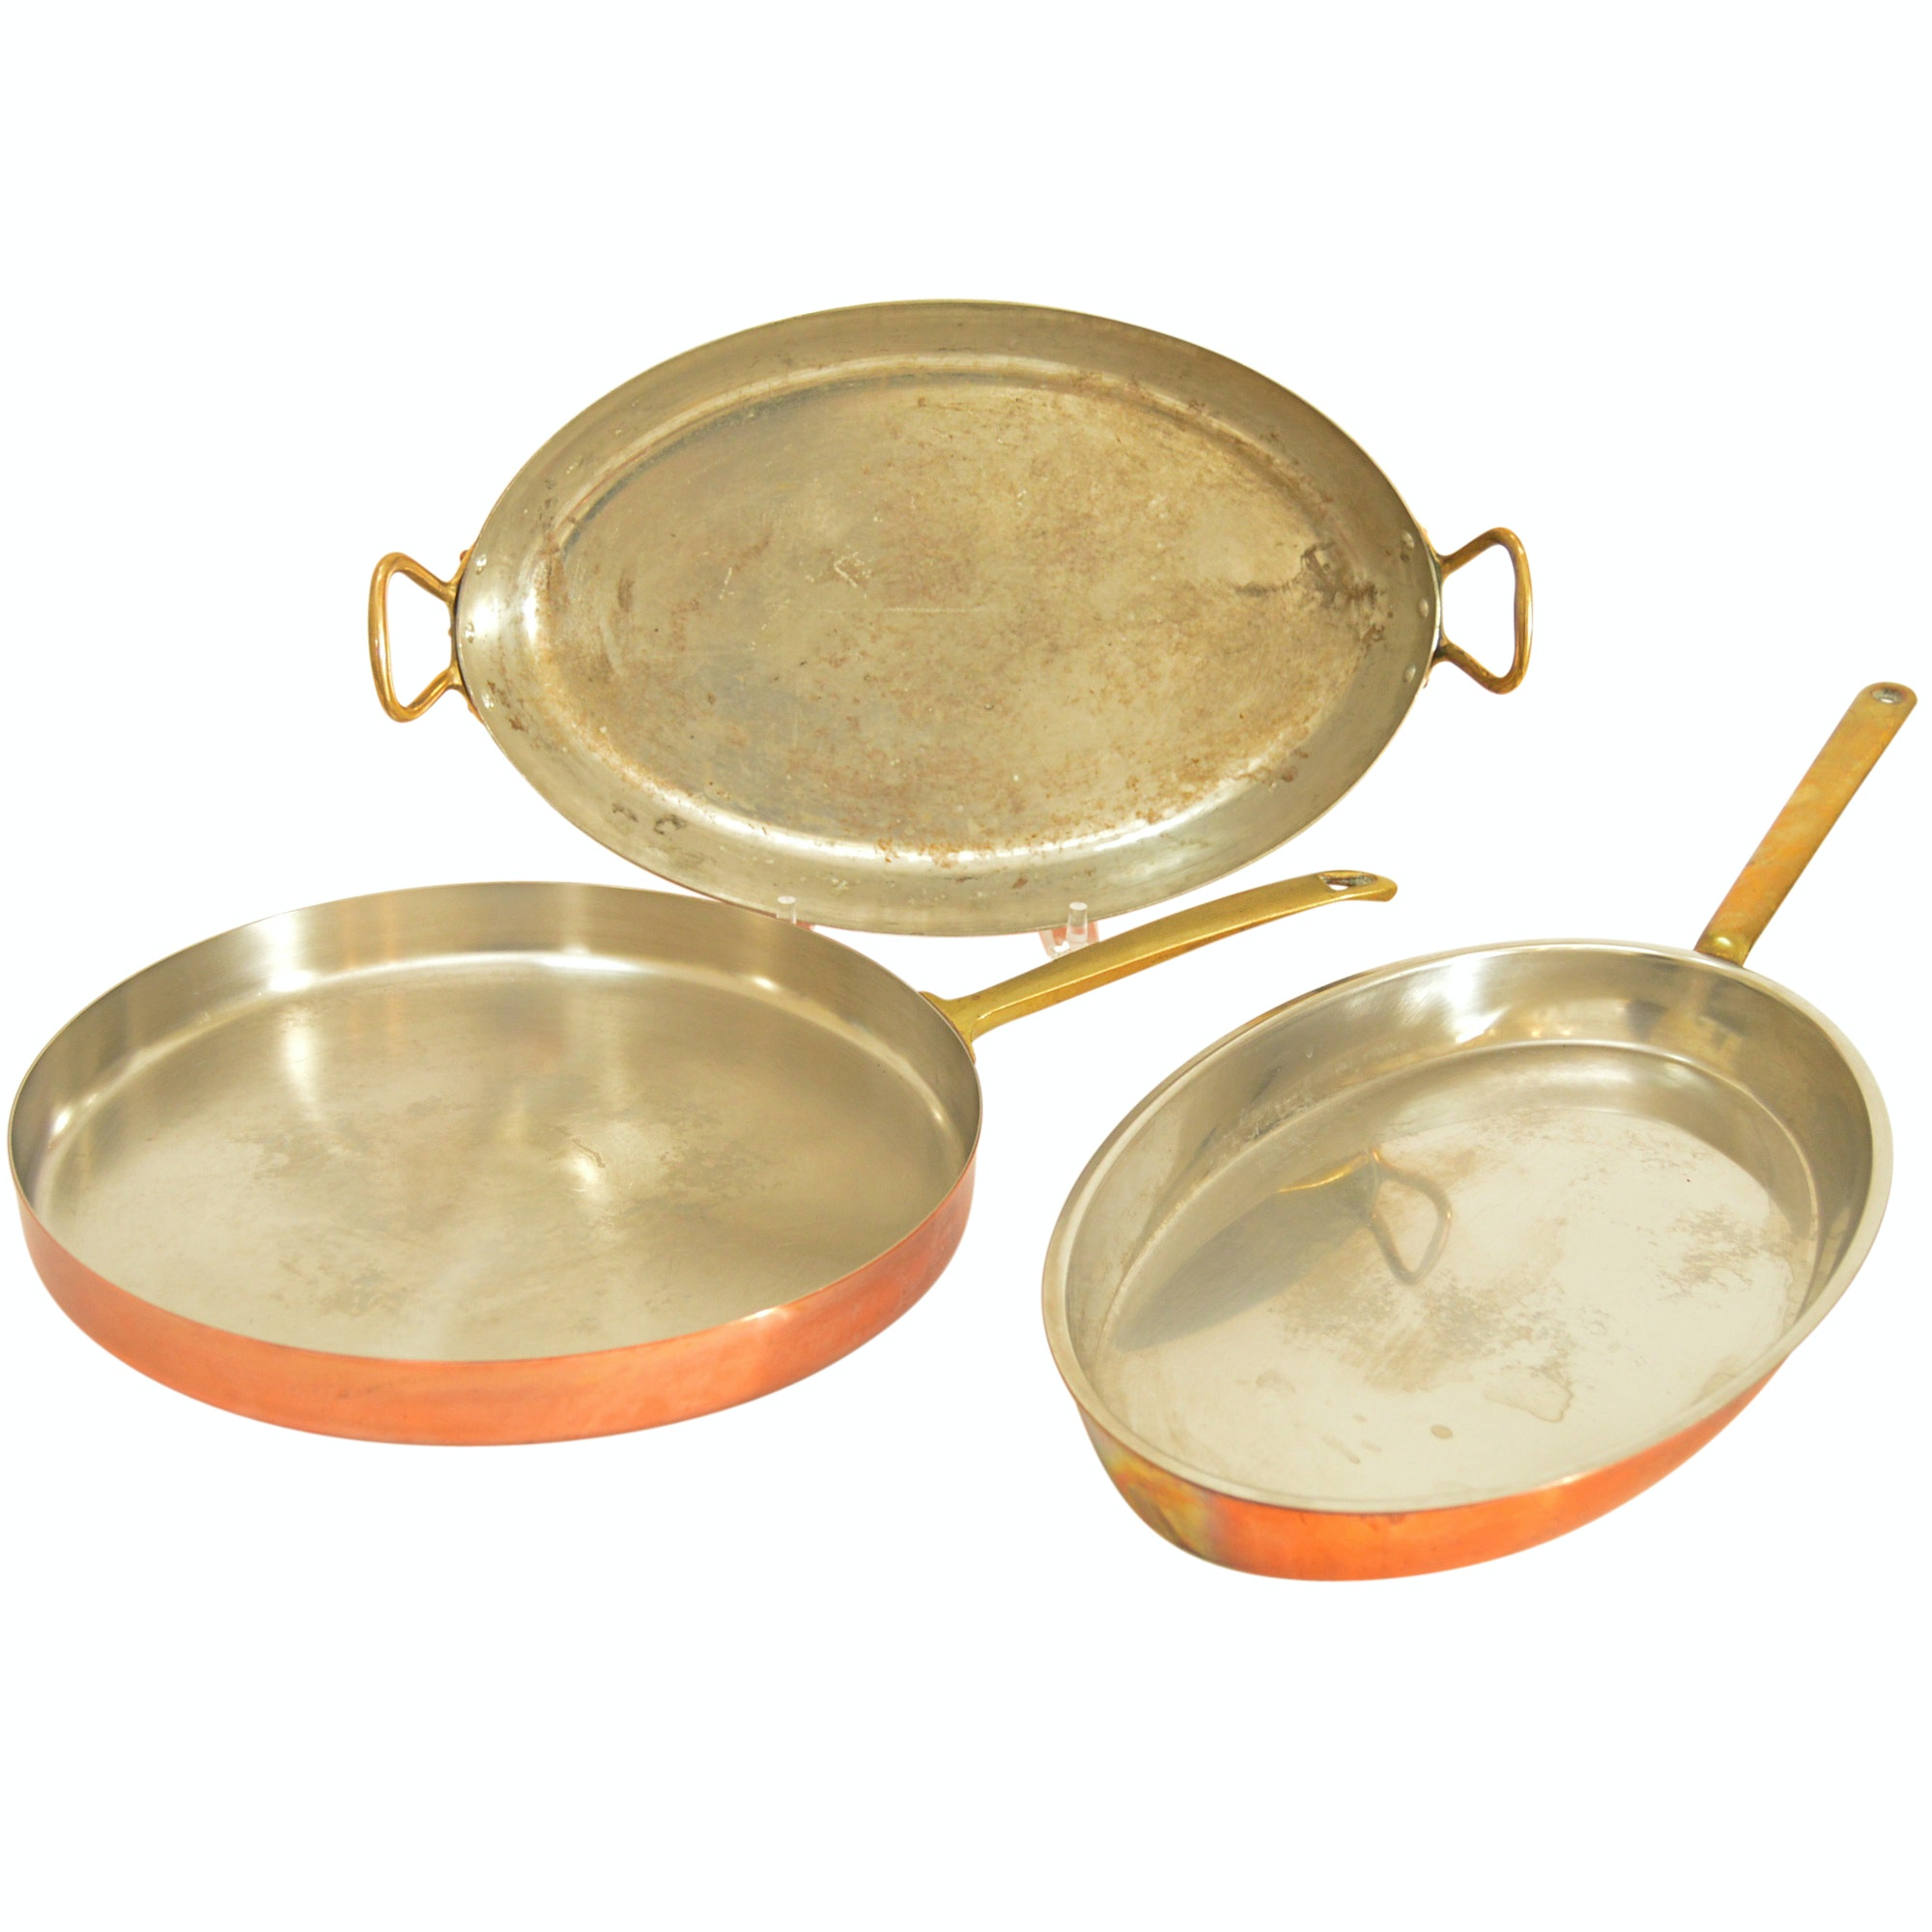 French and Swiss Copper Saute Pans